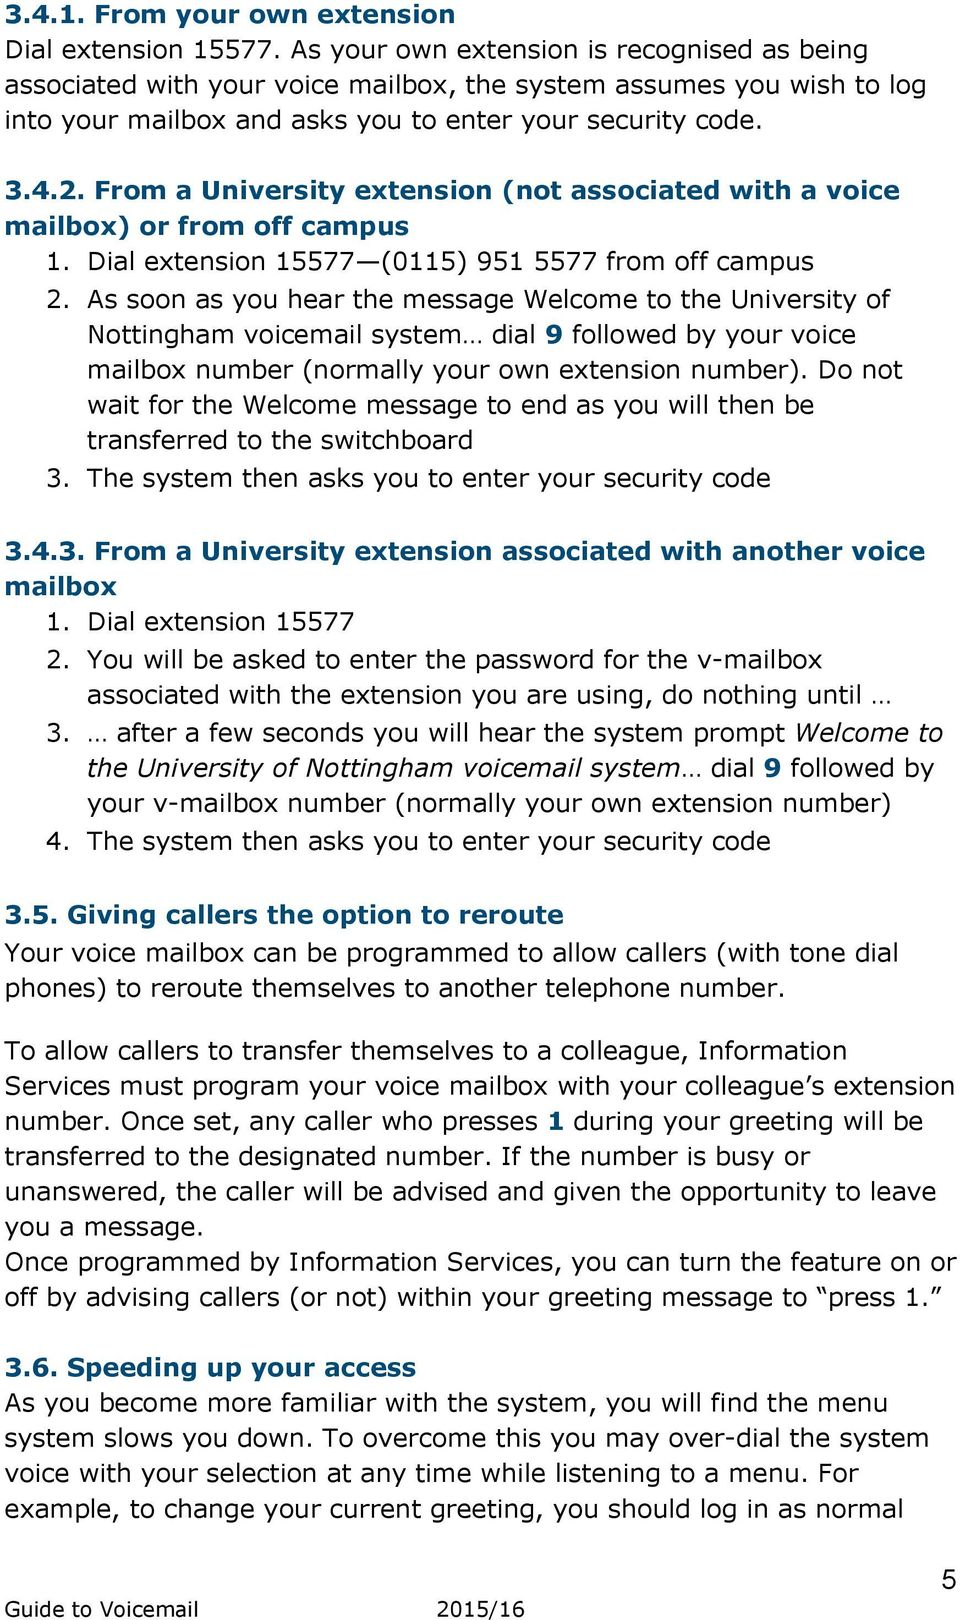 From a University extension (not associated with a voice mailbox) or from off campus 1. Dial extension 15577 (0115) 951 5577 from off campus 2.